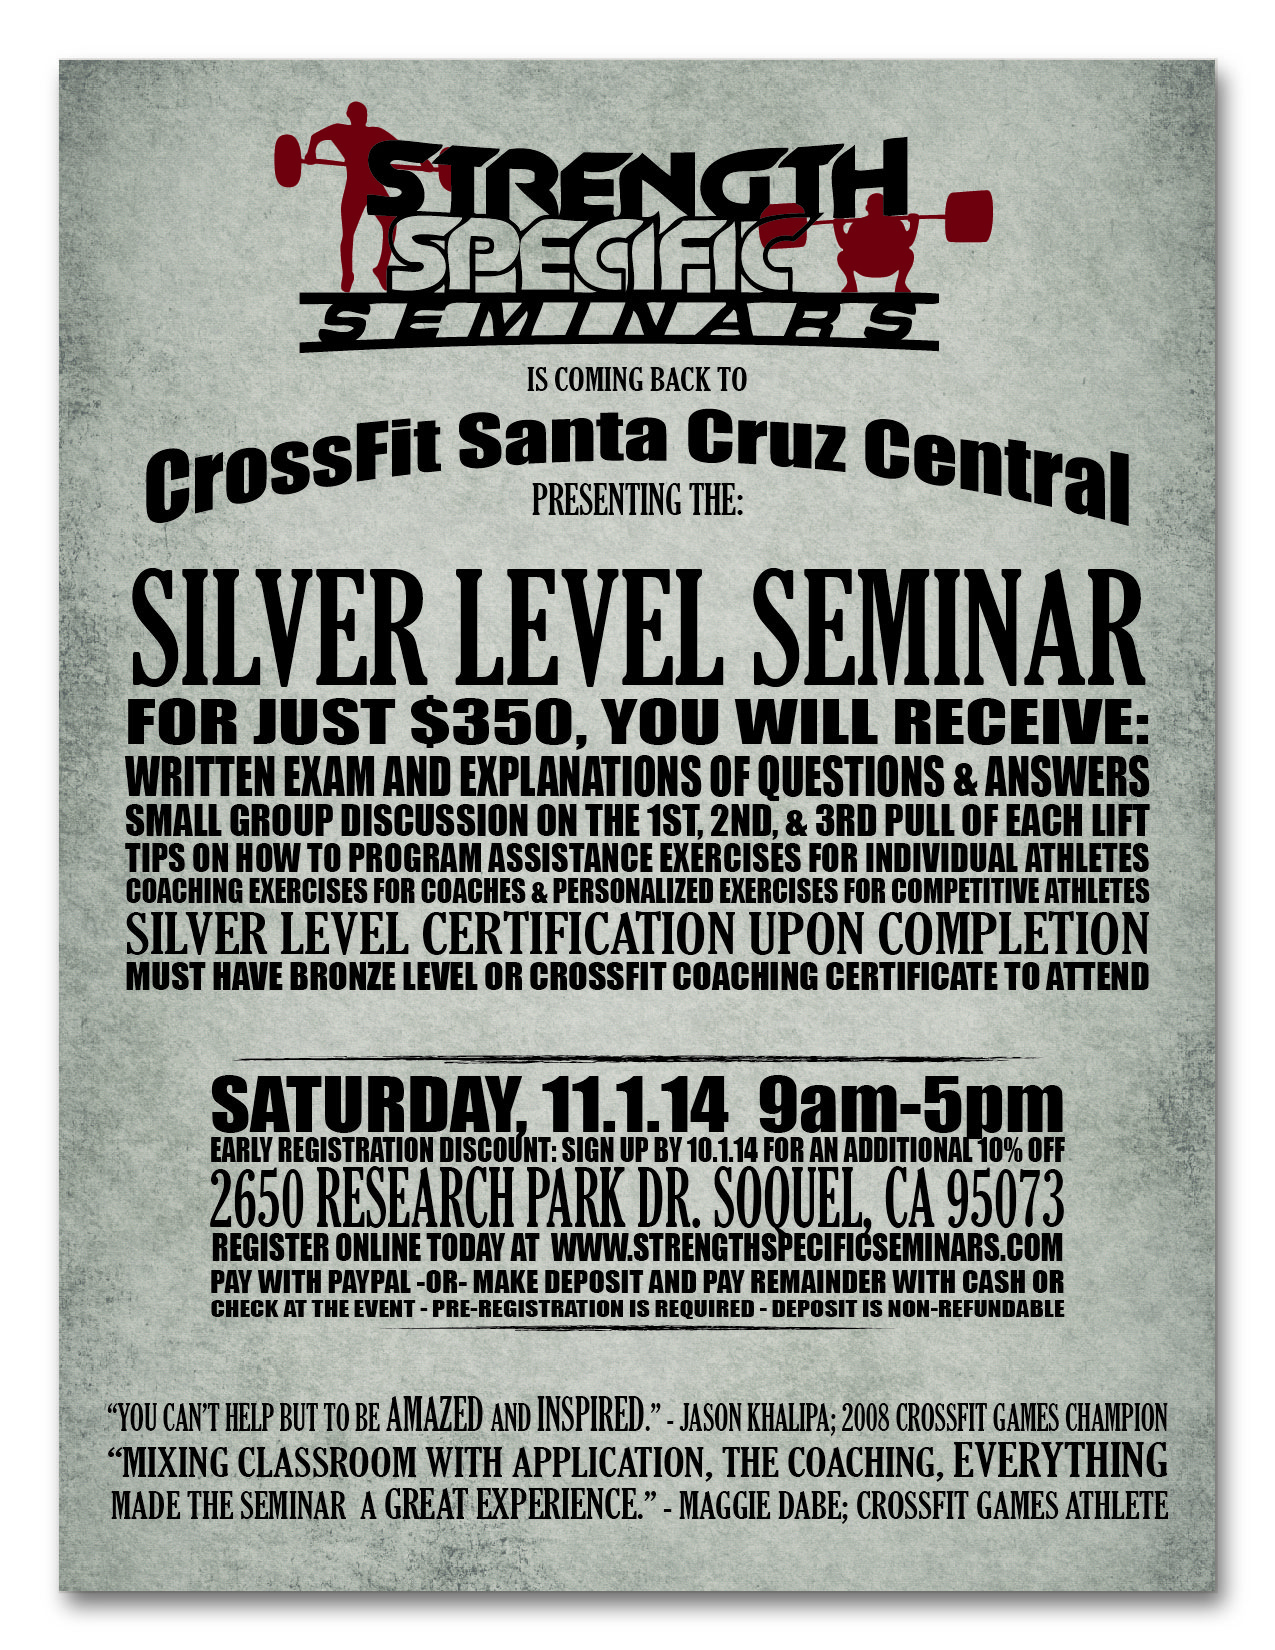 Strength Specific Seminar Flyer